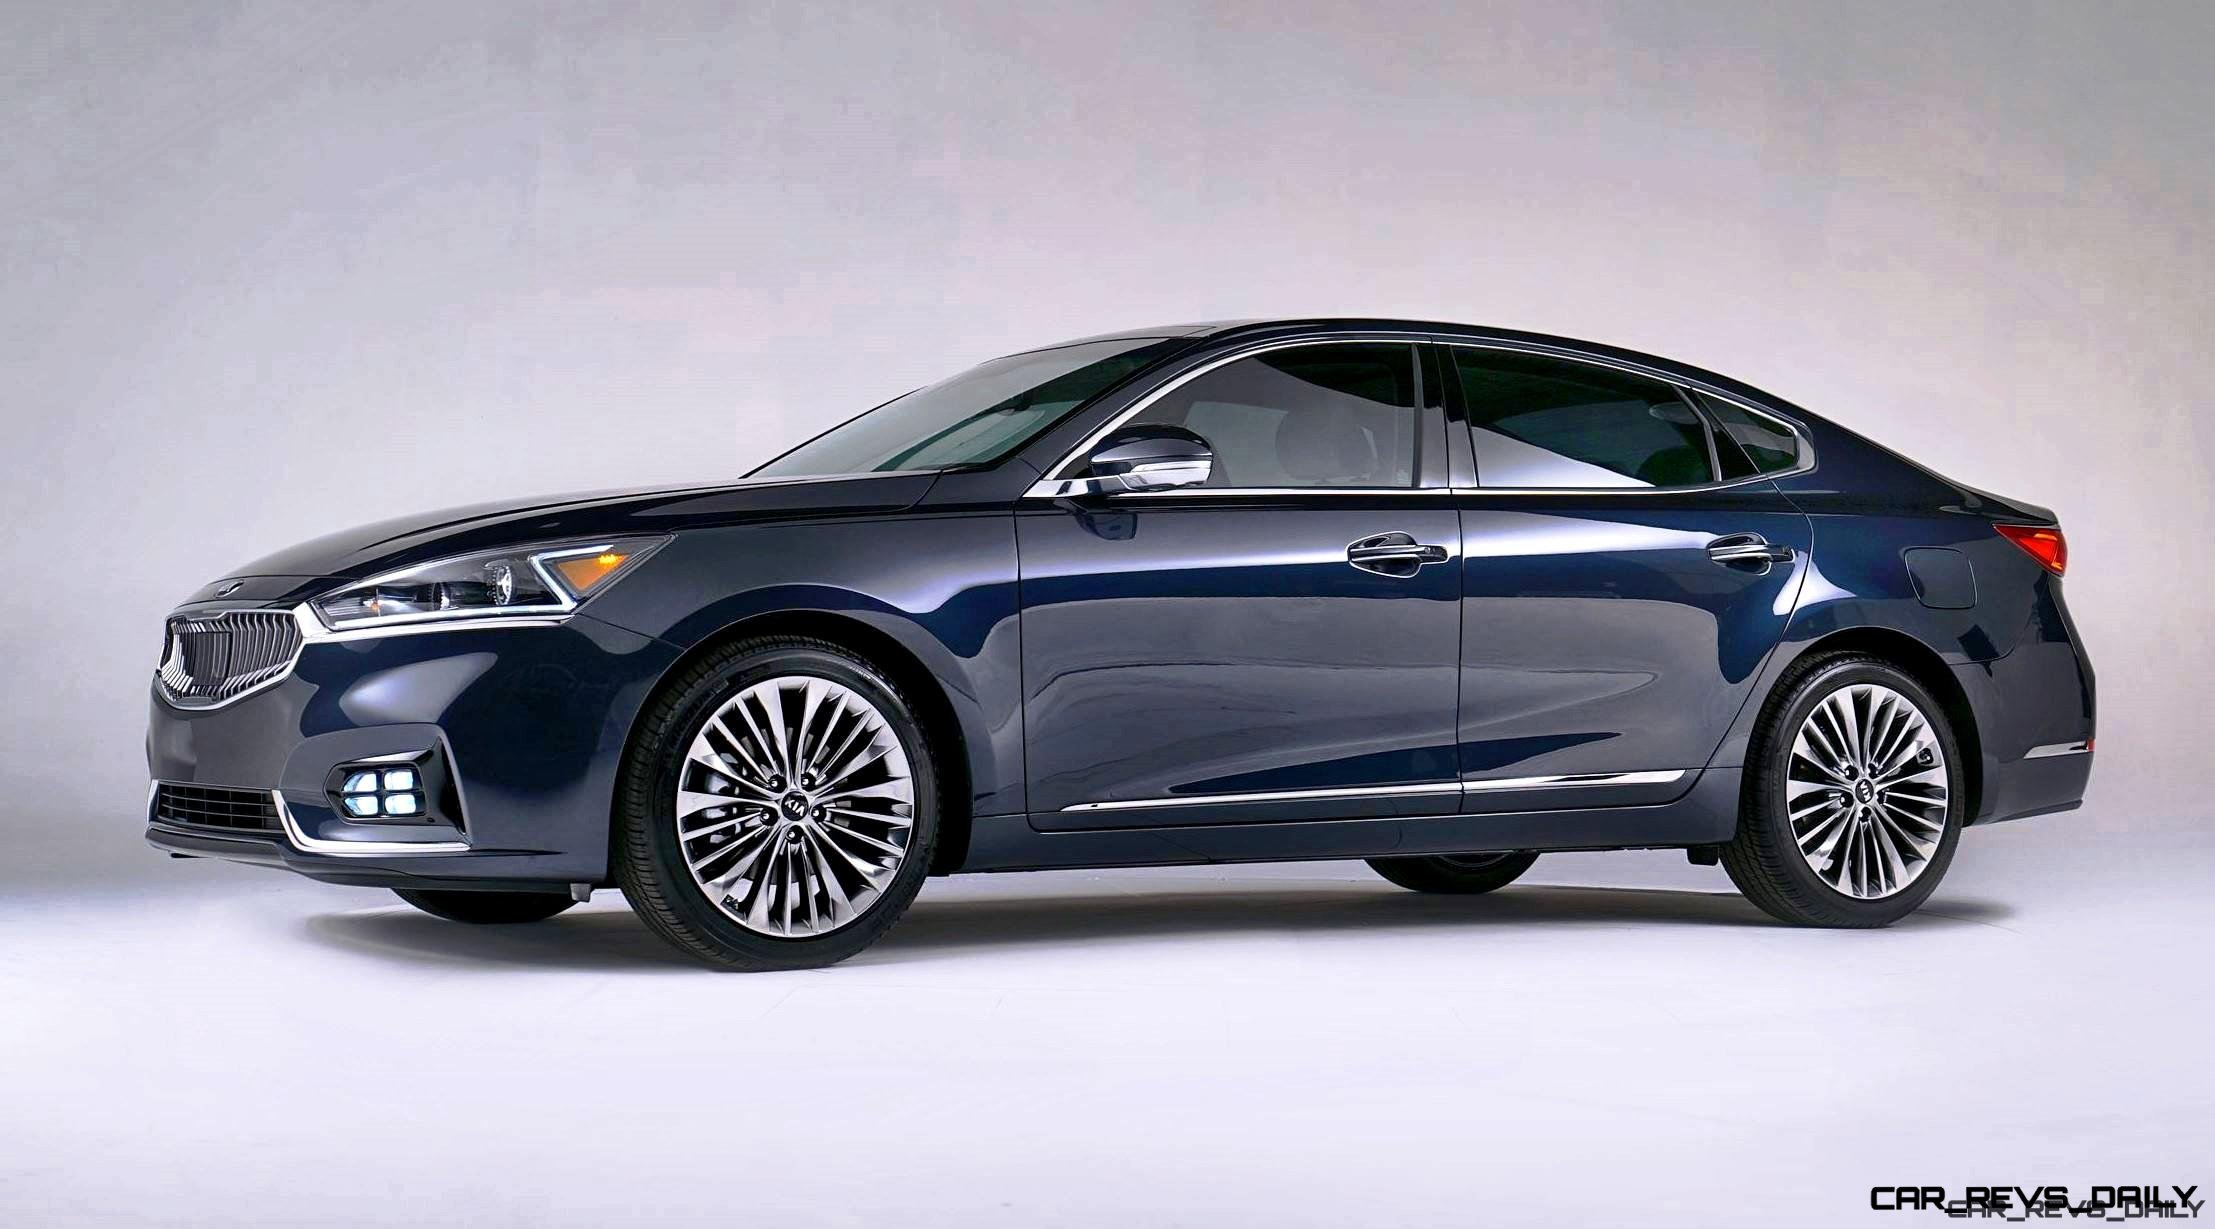 Official: 2017 Kia Cadenza Makes Ny Debut » Car Shopping - 2022 Kia K900 Road Test Release Date, Color Options